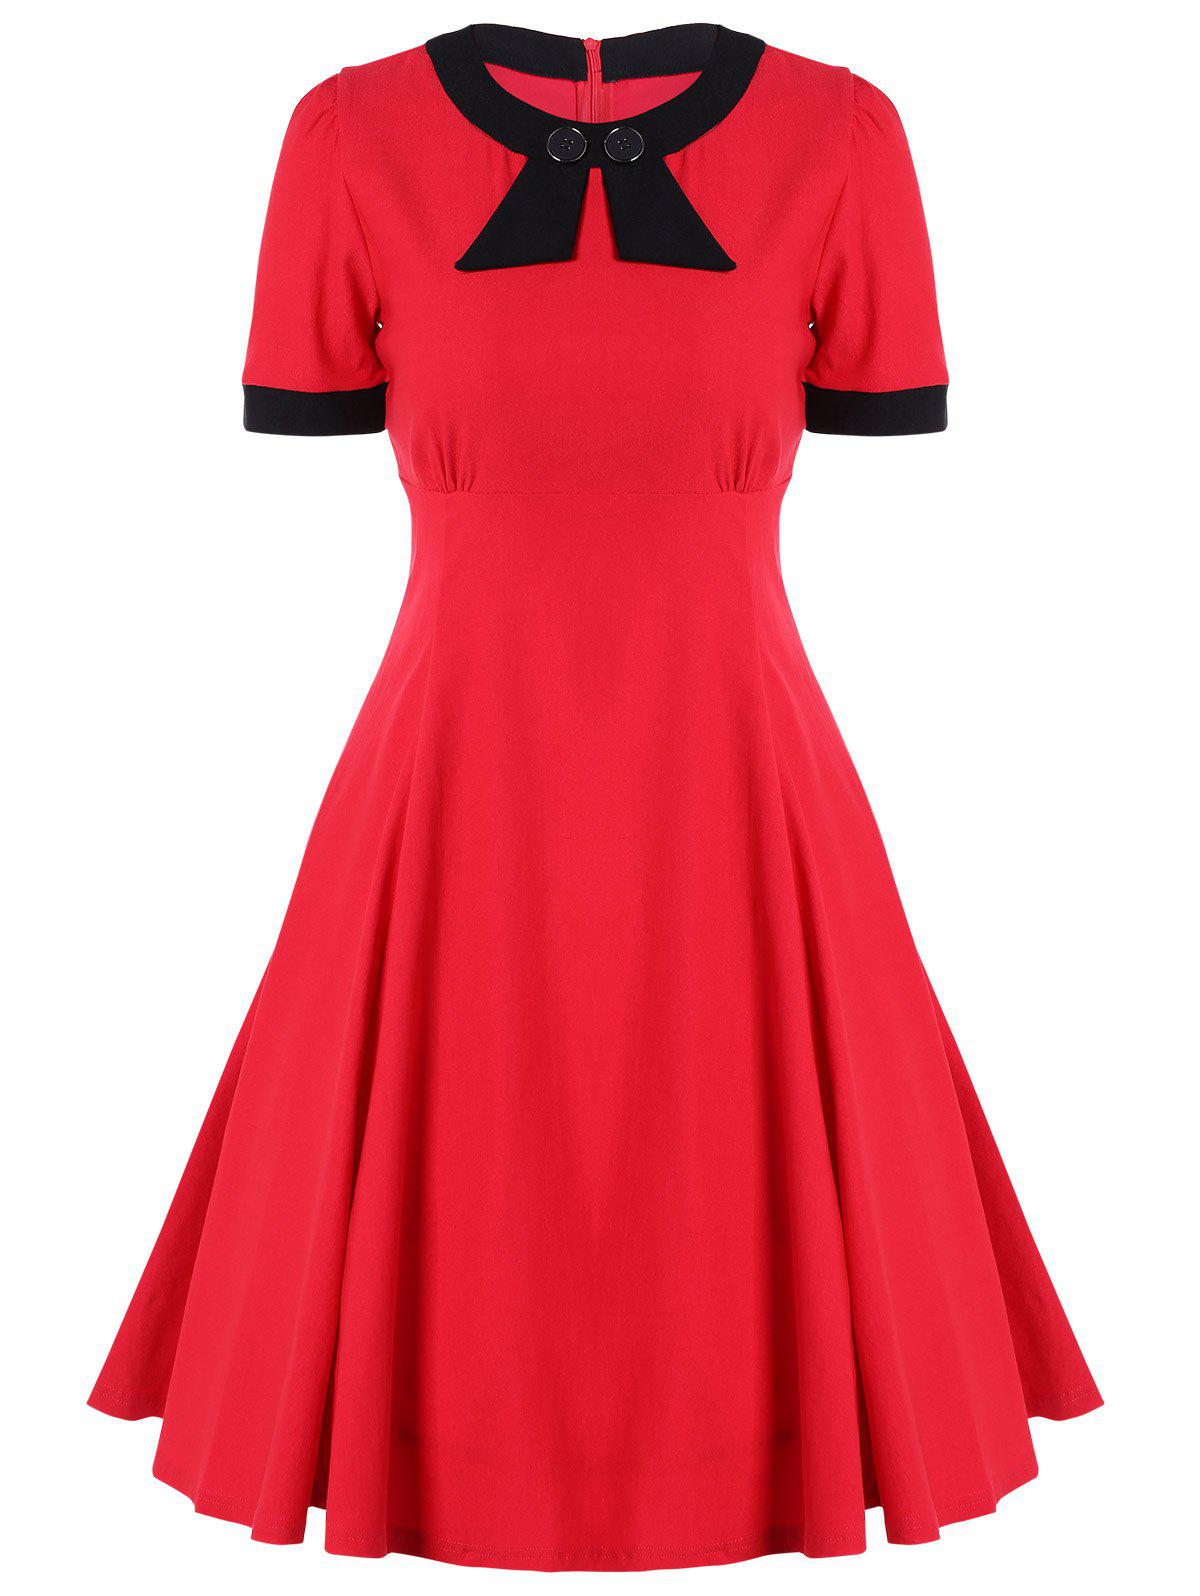 Retro High Waist Buttoned Contrast Color Dress - RED L